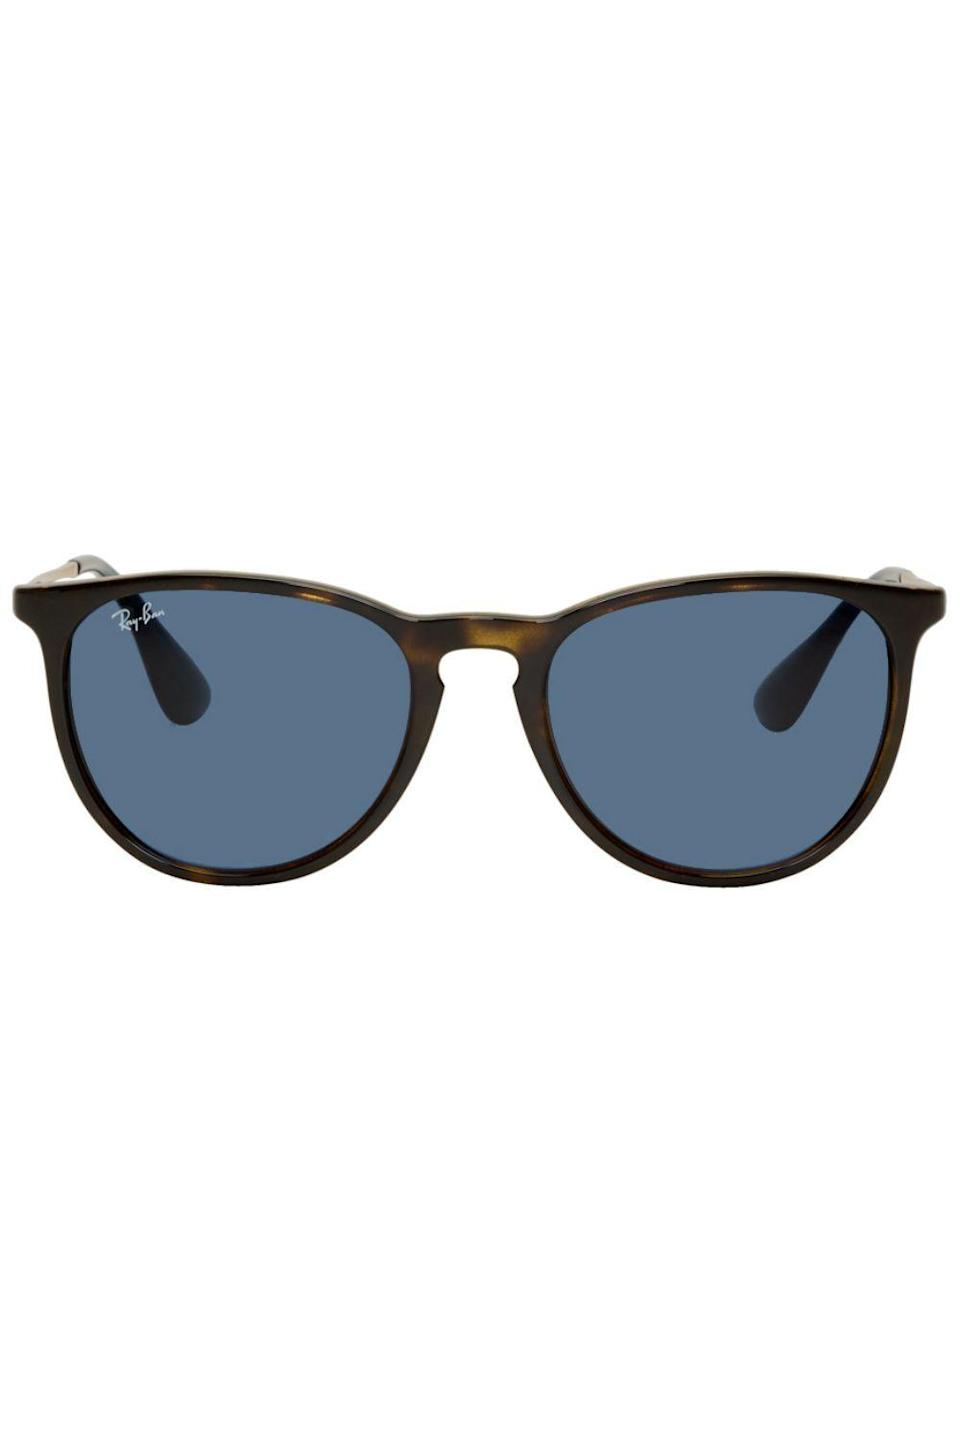 """<p><strong>Ray-Ban</strong></p><p>ssense.com</p><p><strong>$95.00</strong></p><p><a href=""""https://go.redirectingat.com?id=74968X1596630&url=https%3A%2F%2Fwww.ssense.com%2Fen-us%2Fmen%2Fproduct%2Fray-ban%2Ftortoiseshell-erika-sunglasses%2F4602911&sref=https%3A%2F%2Fwww.cosmopolitan.com%2Fstyle-beauty%2Ffashion%2Fg32619153%2Fgifts-for-man-who-has-everything%2F"""" rel=""""nofollow noopener"""" target=""""_blank"""" data-ylk=""""slk:Shop Now"""" class=""""link rapid-noclick-resp"""">Shop Now</a></p><p>A new pair of shades is always appreciated. He'll be glad to add this pair to the rotation.</p>"""